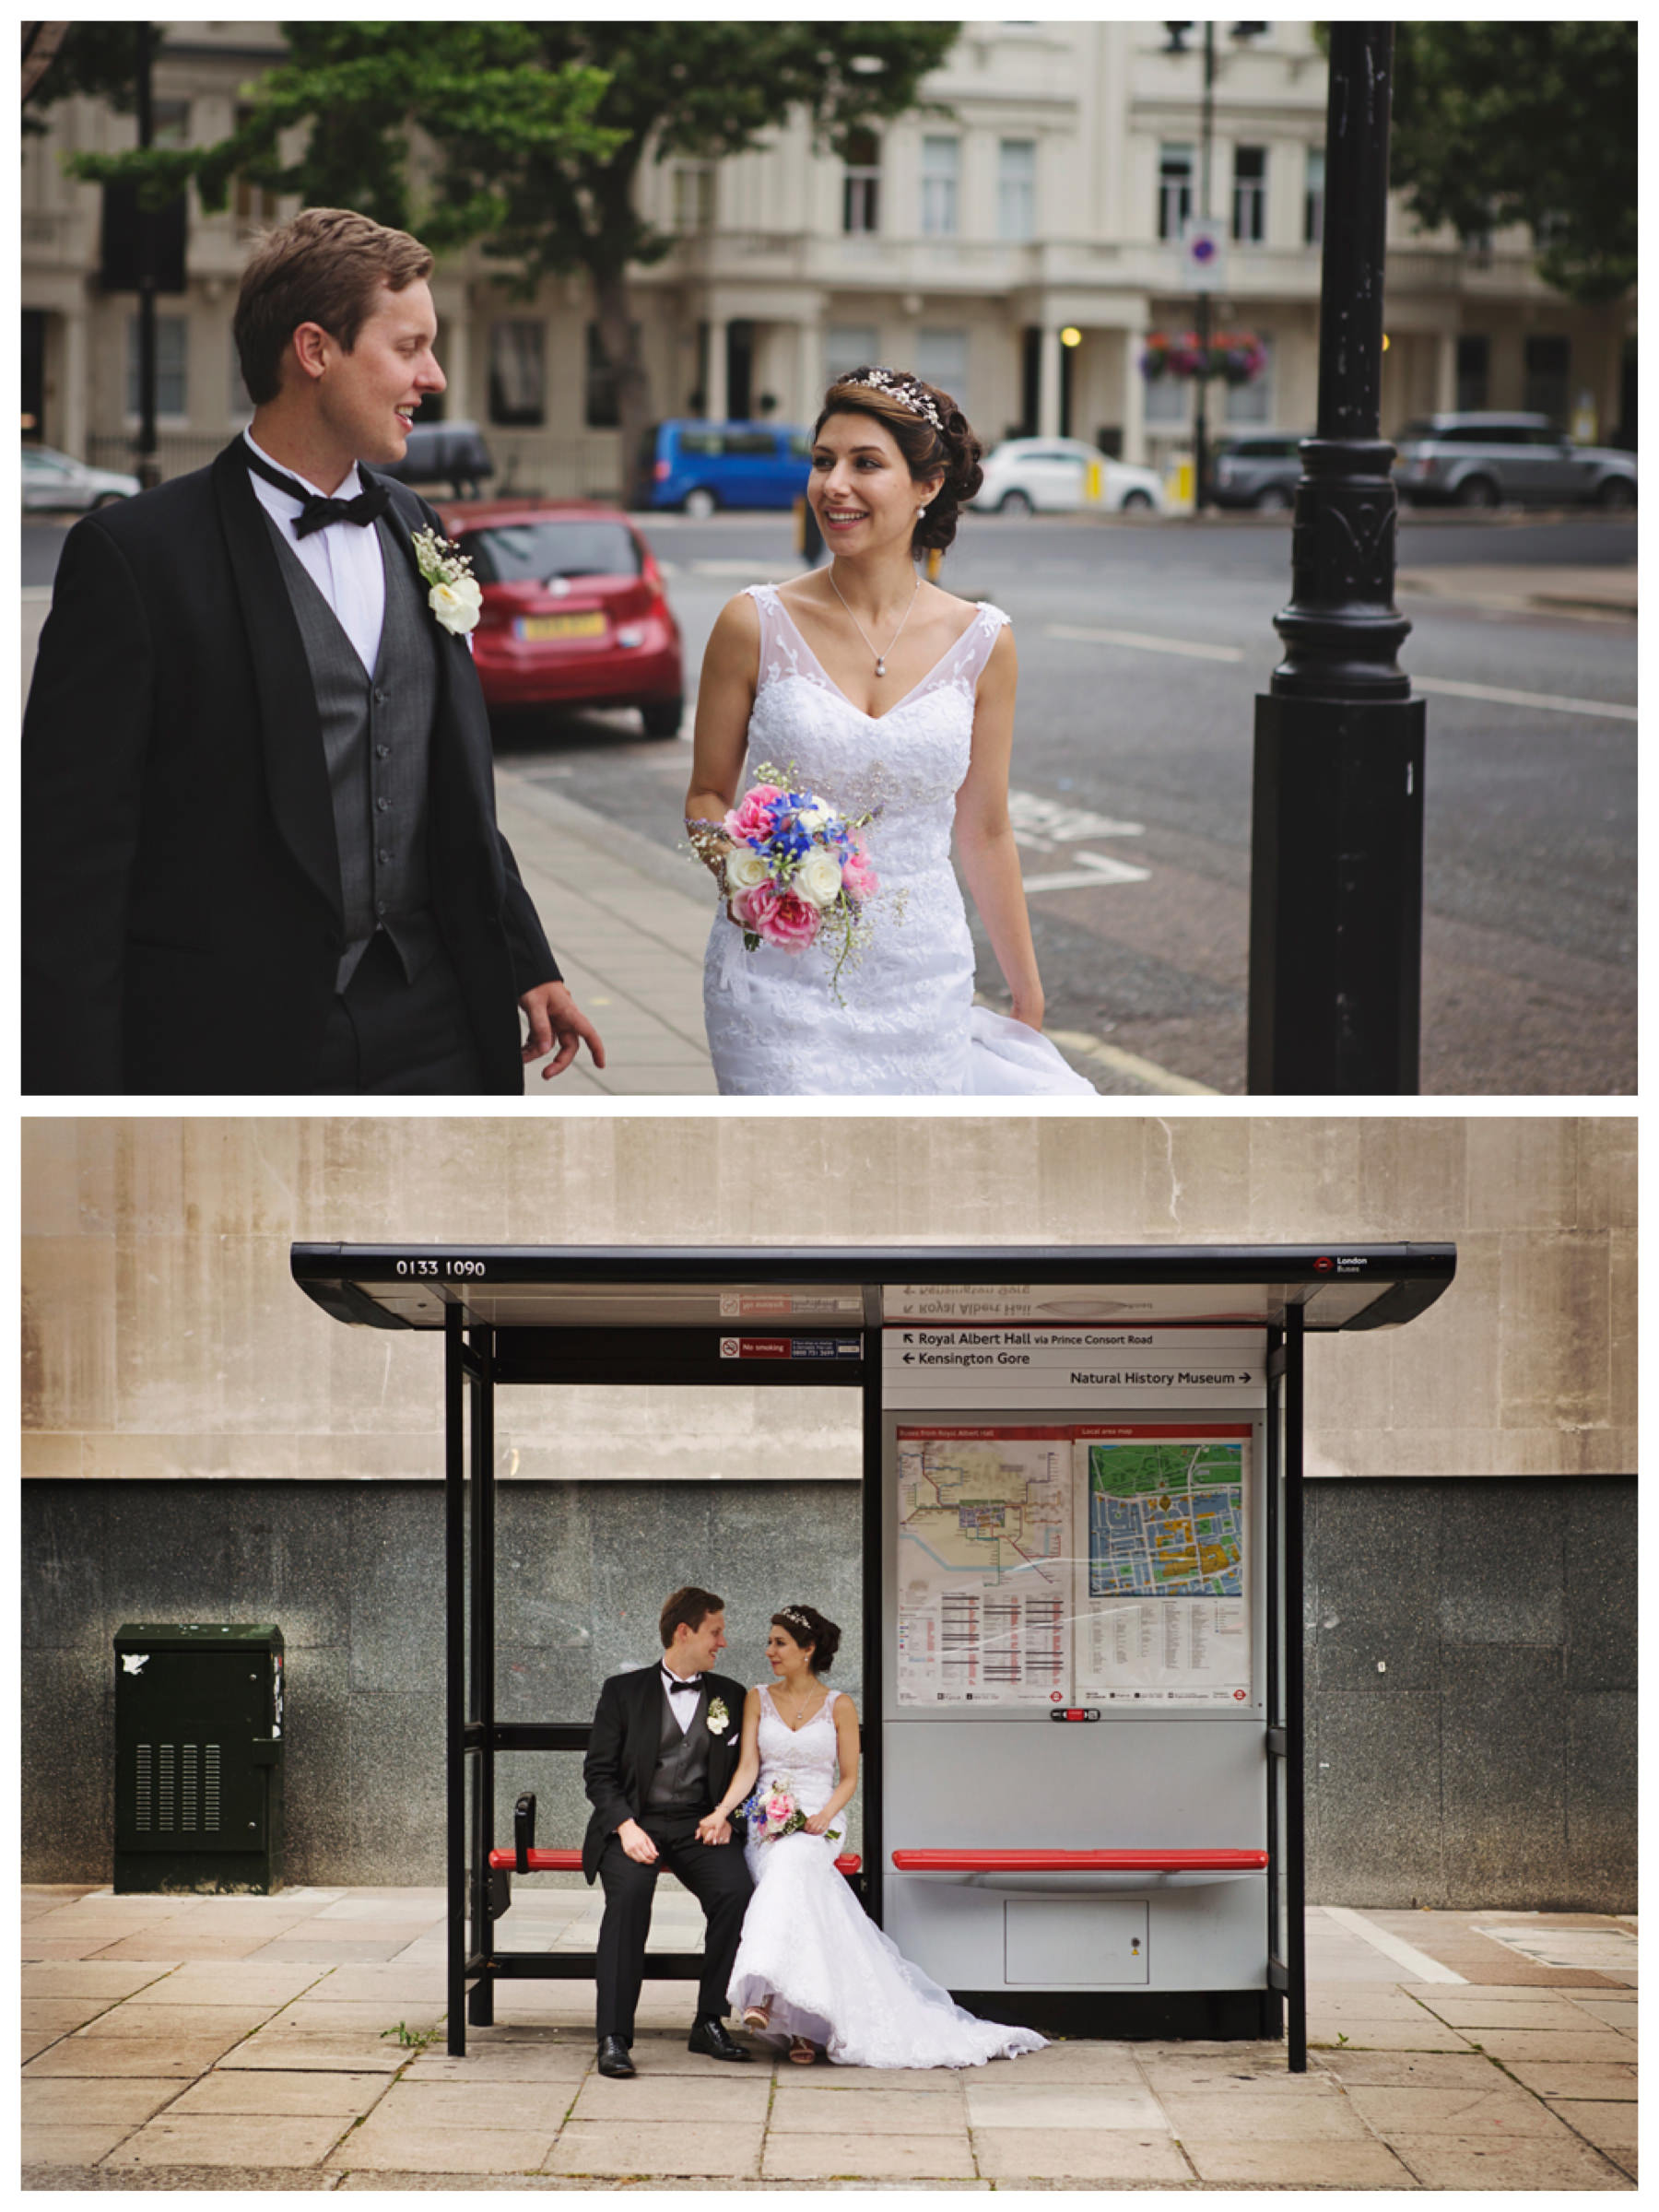 Kensington Wedding Photographer 12